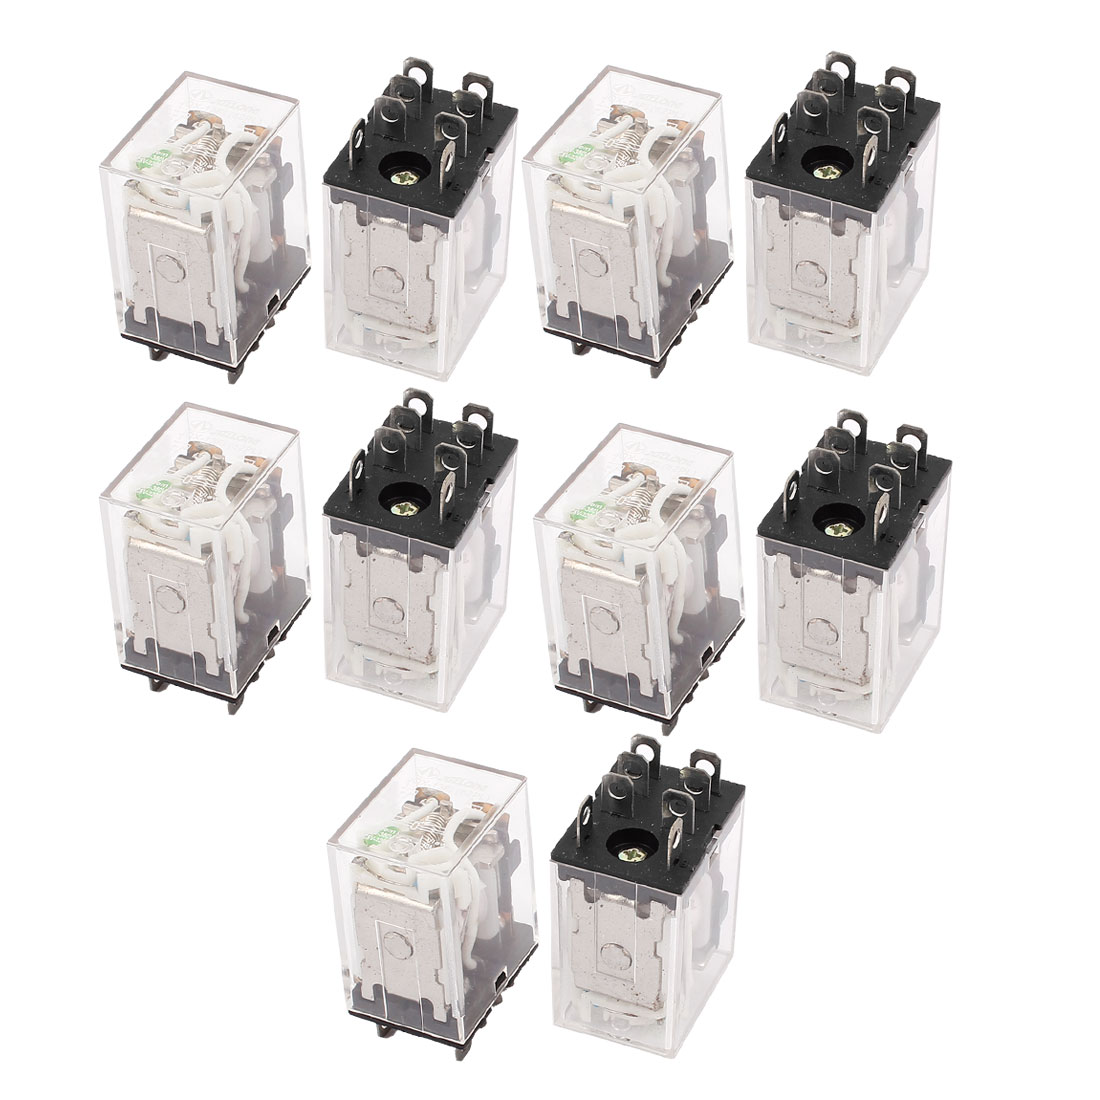 JQX-13FL DC 24V Coil DPDT 8-Pin Power Electromagnetic Relay 10PCS